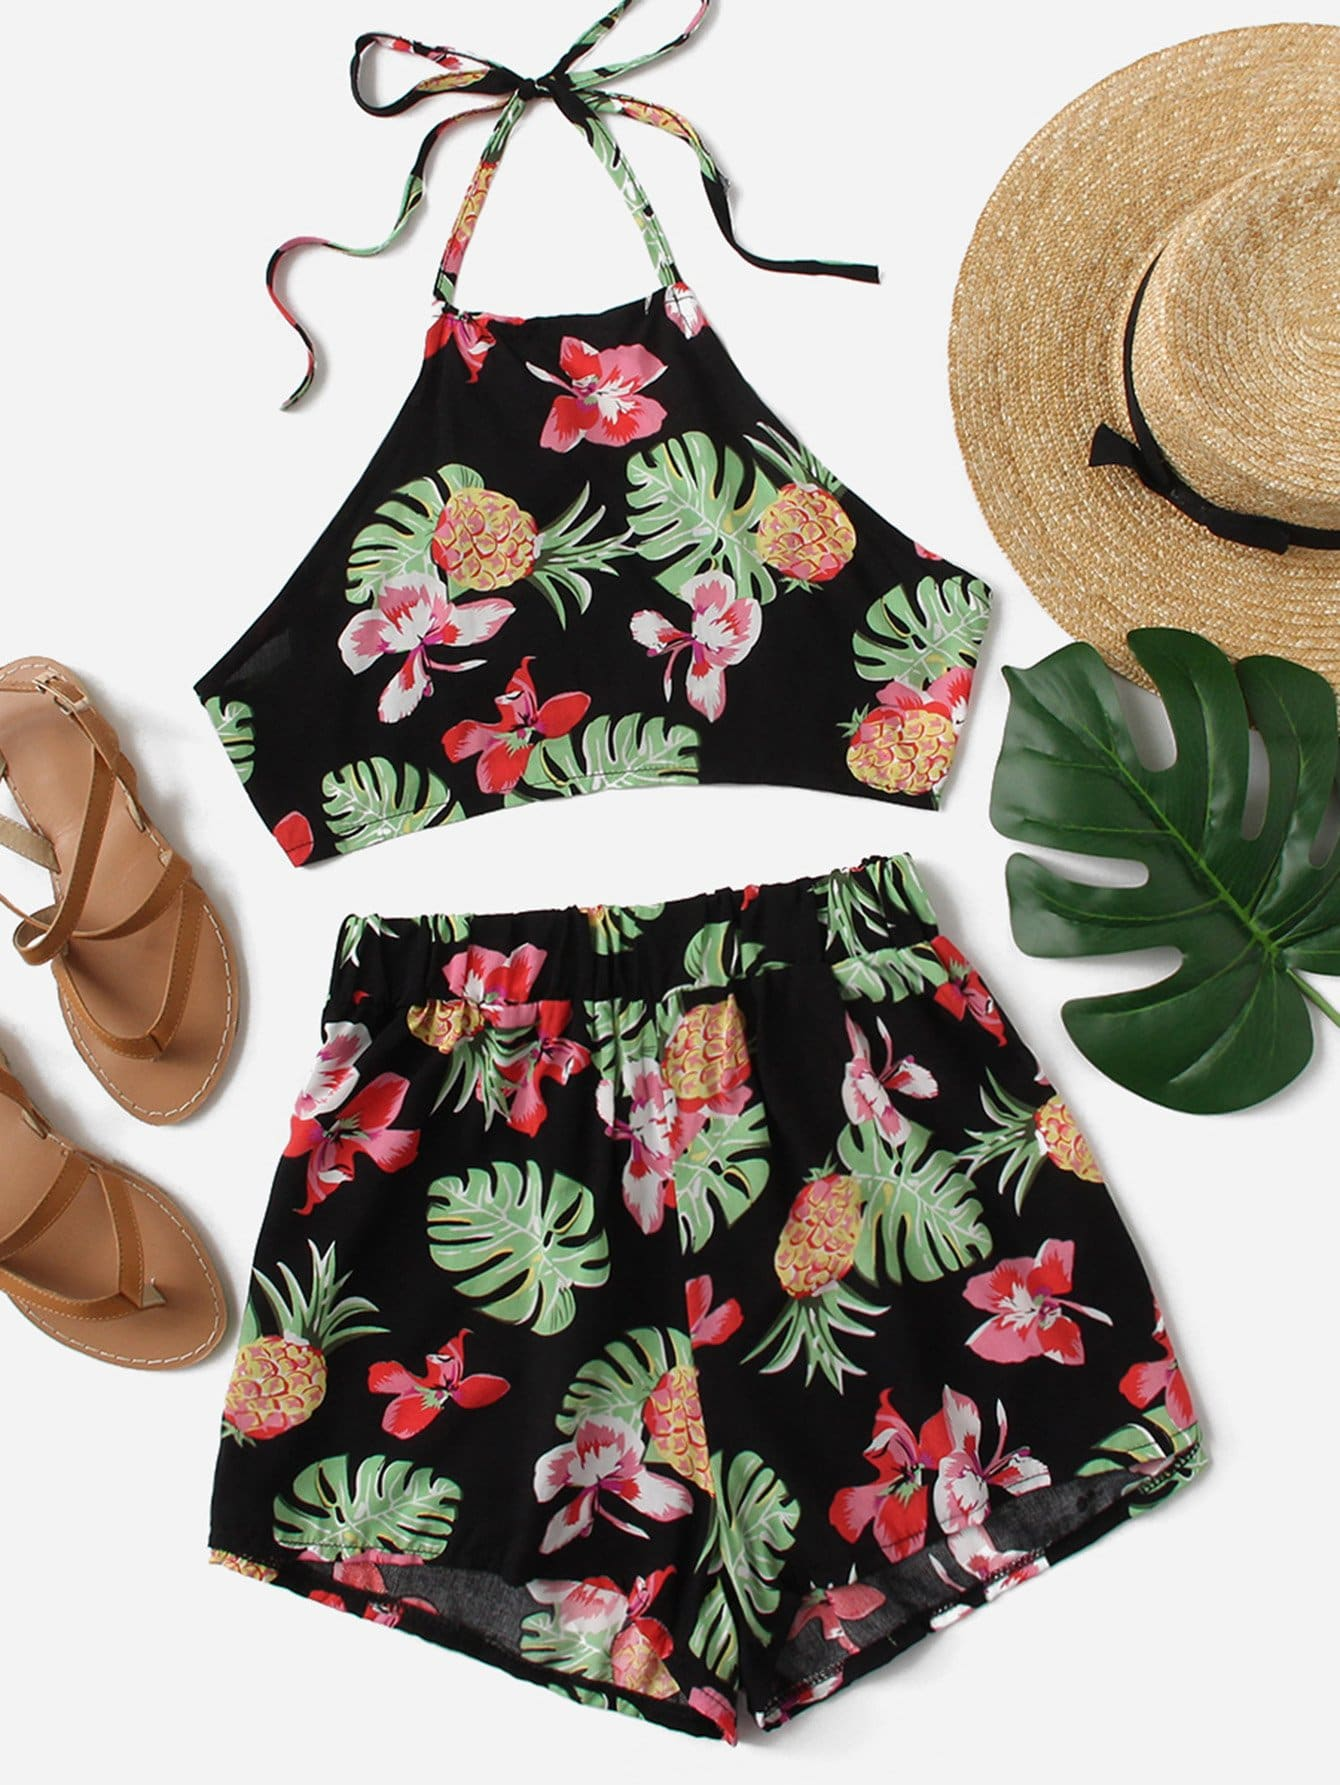 Pineapple Print Halter Top With Shorts